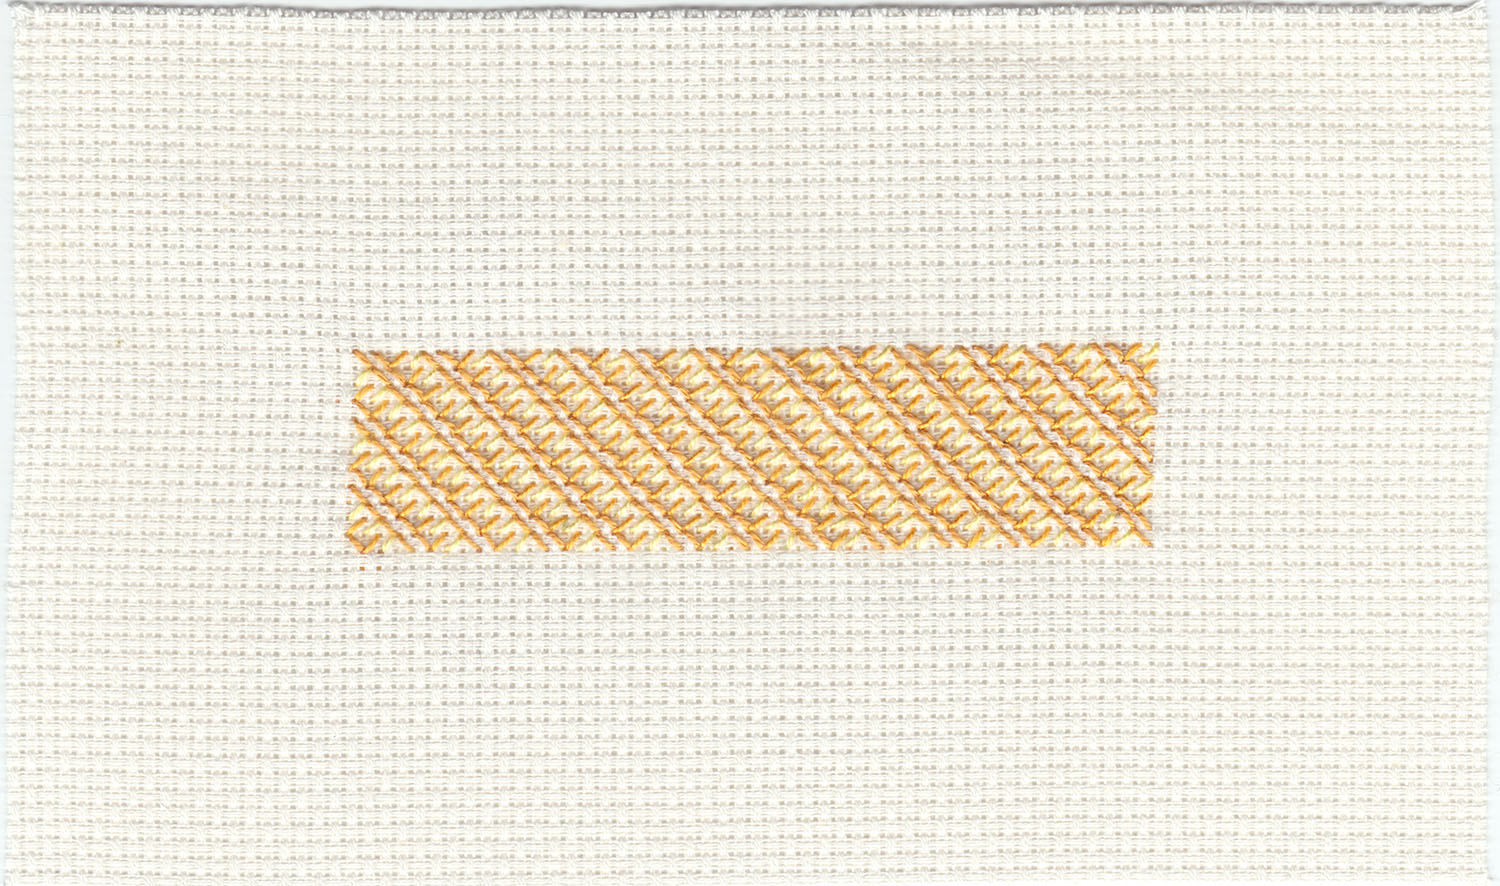 Colour Study in 576 Diagonal Stitches_10A_web.jpg